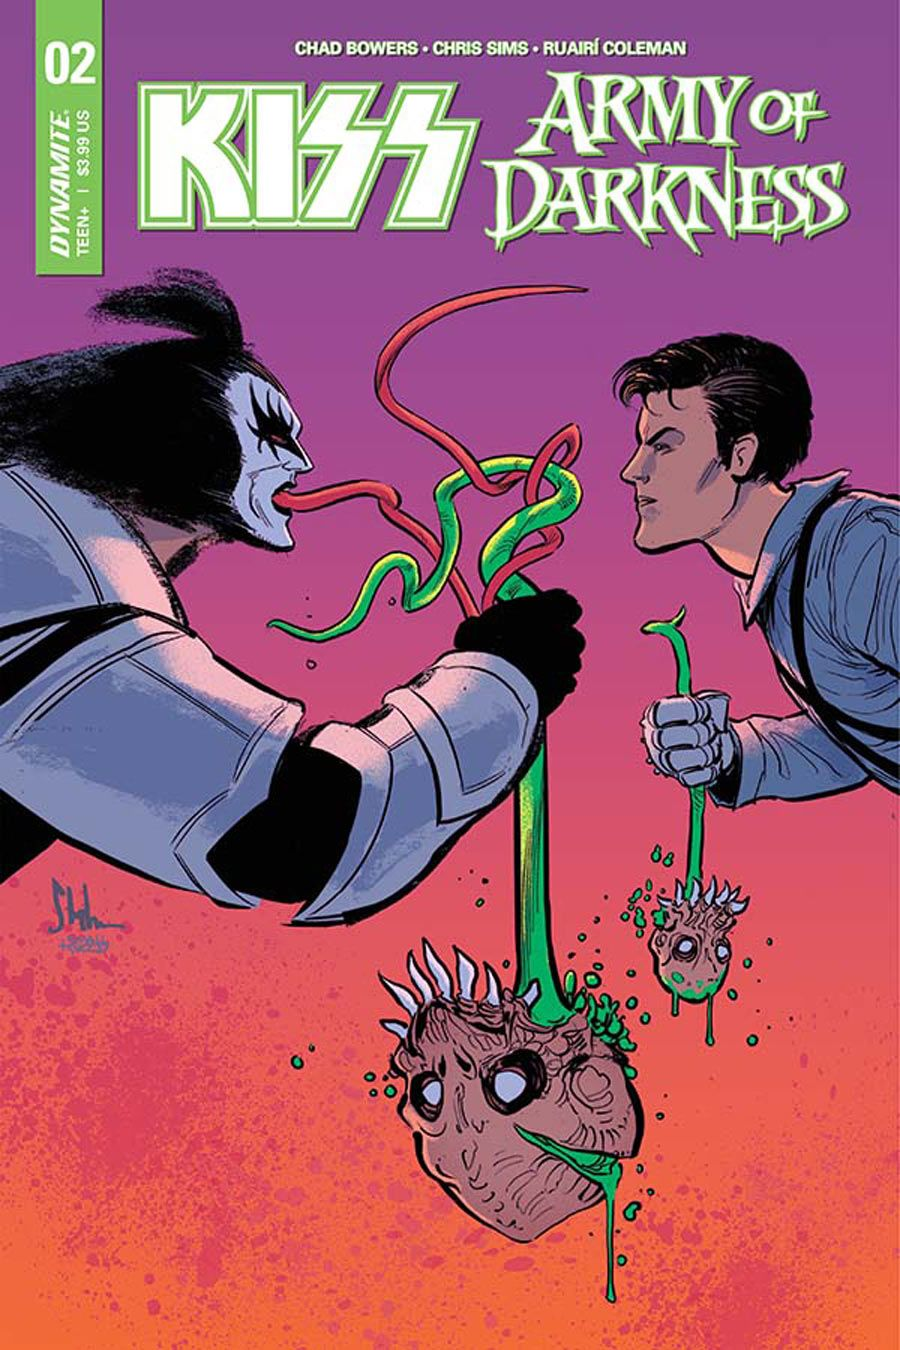 DYNAMITE ENTERTAINMENT//2018 KYLE STRAHM COVER A KISS//ARMY OF DARKNESS #1